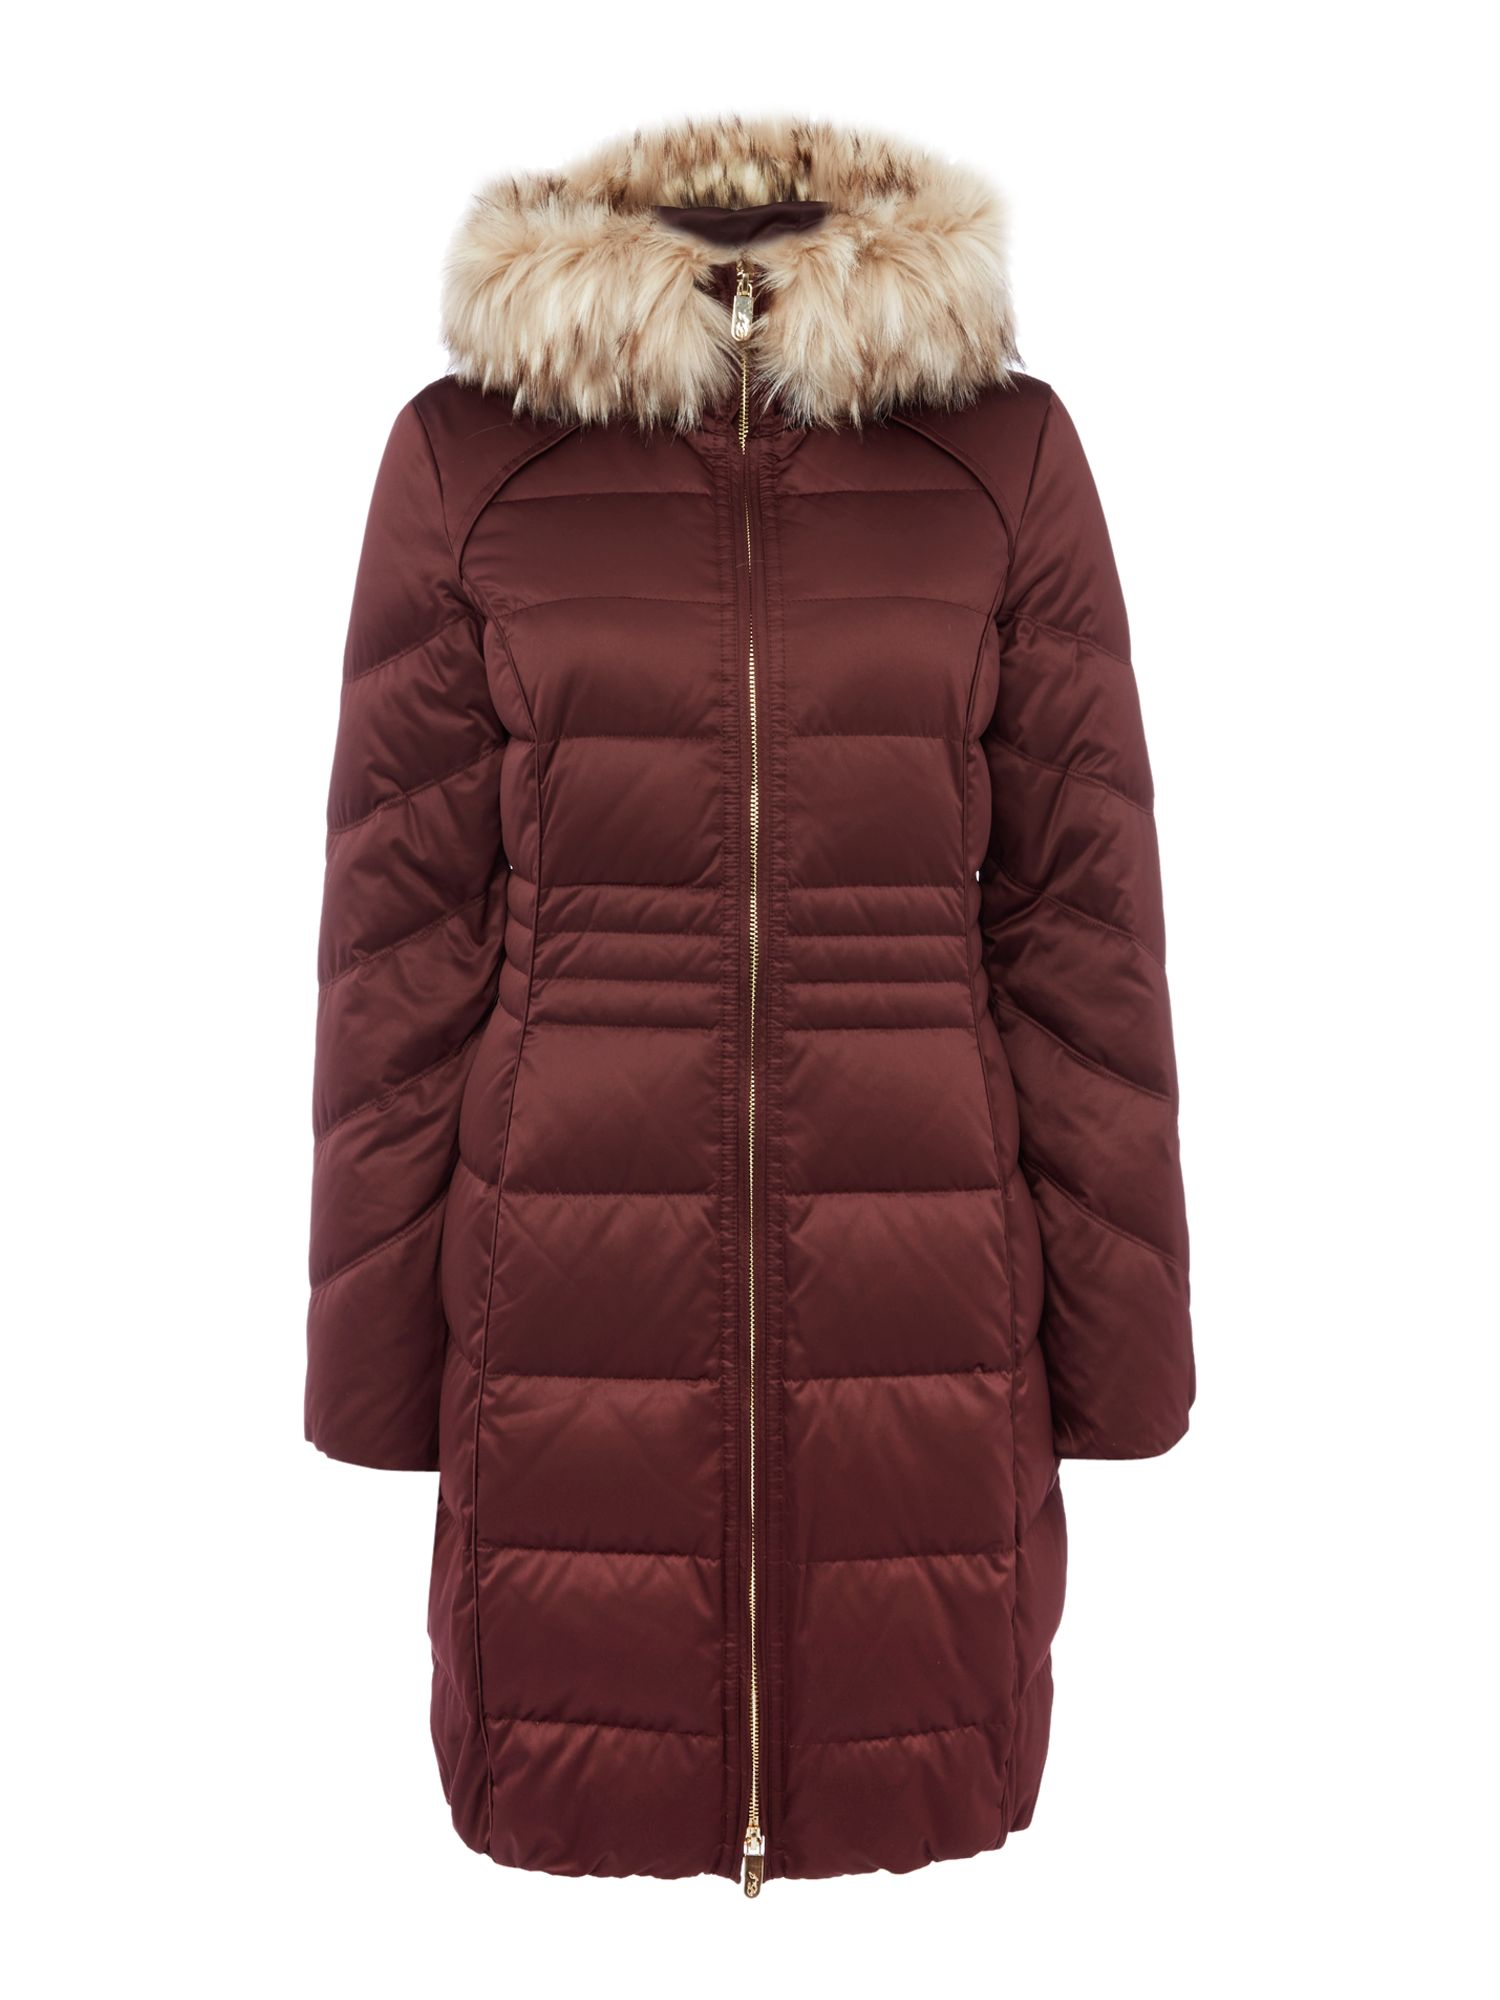 Eliza J Satin Down Coat with Faux Fur Hood, Dark Red